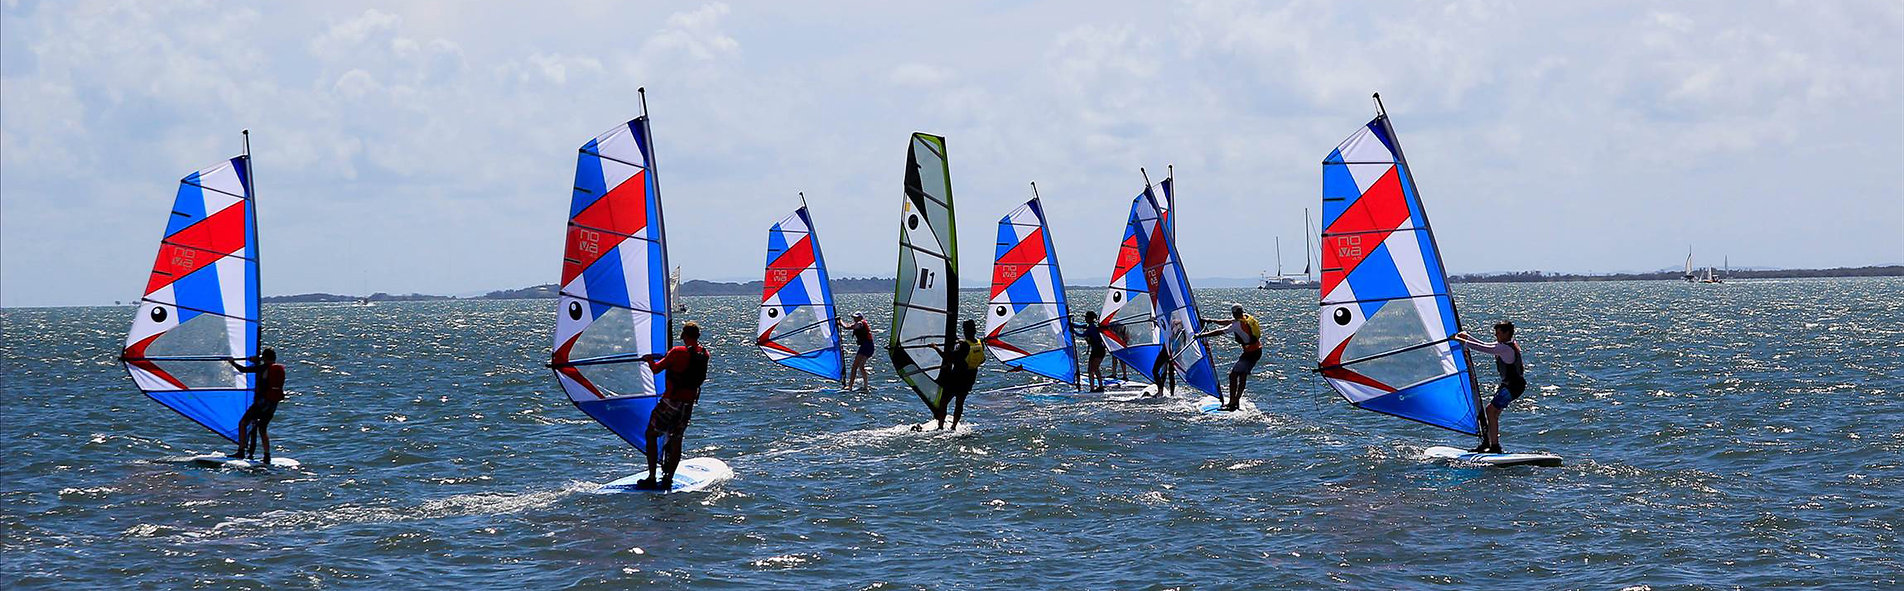 learn to windsurf.jpg